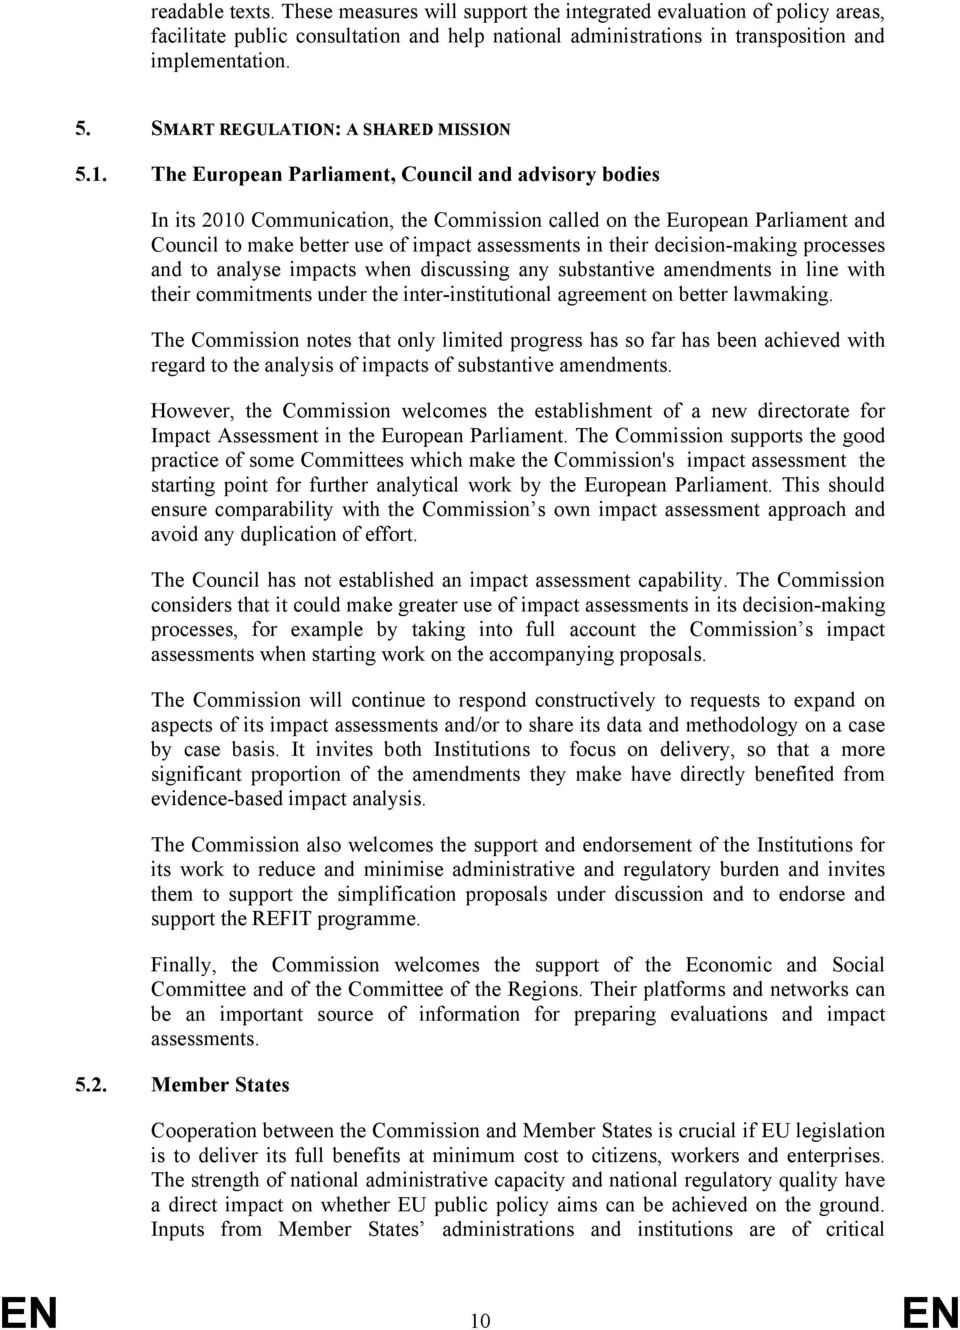 The European Parliament, Council and advisory bodies In its 2010 Communication, the Commission called on the European Parliament and Council to make better use of impact assessments in their